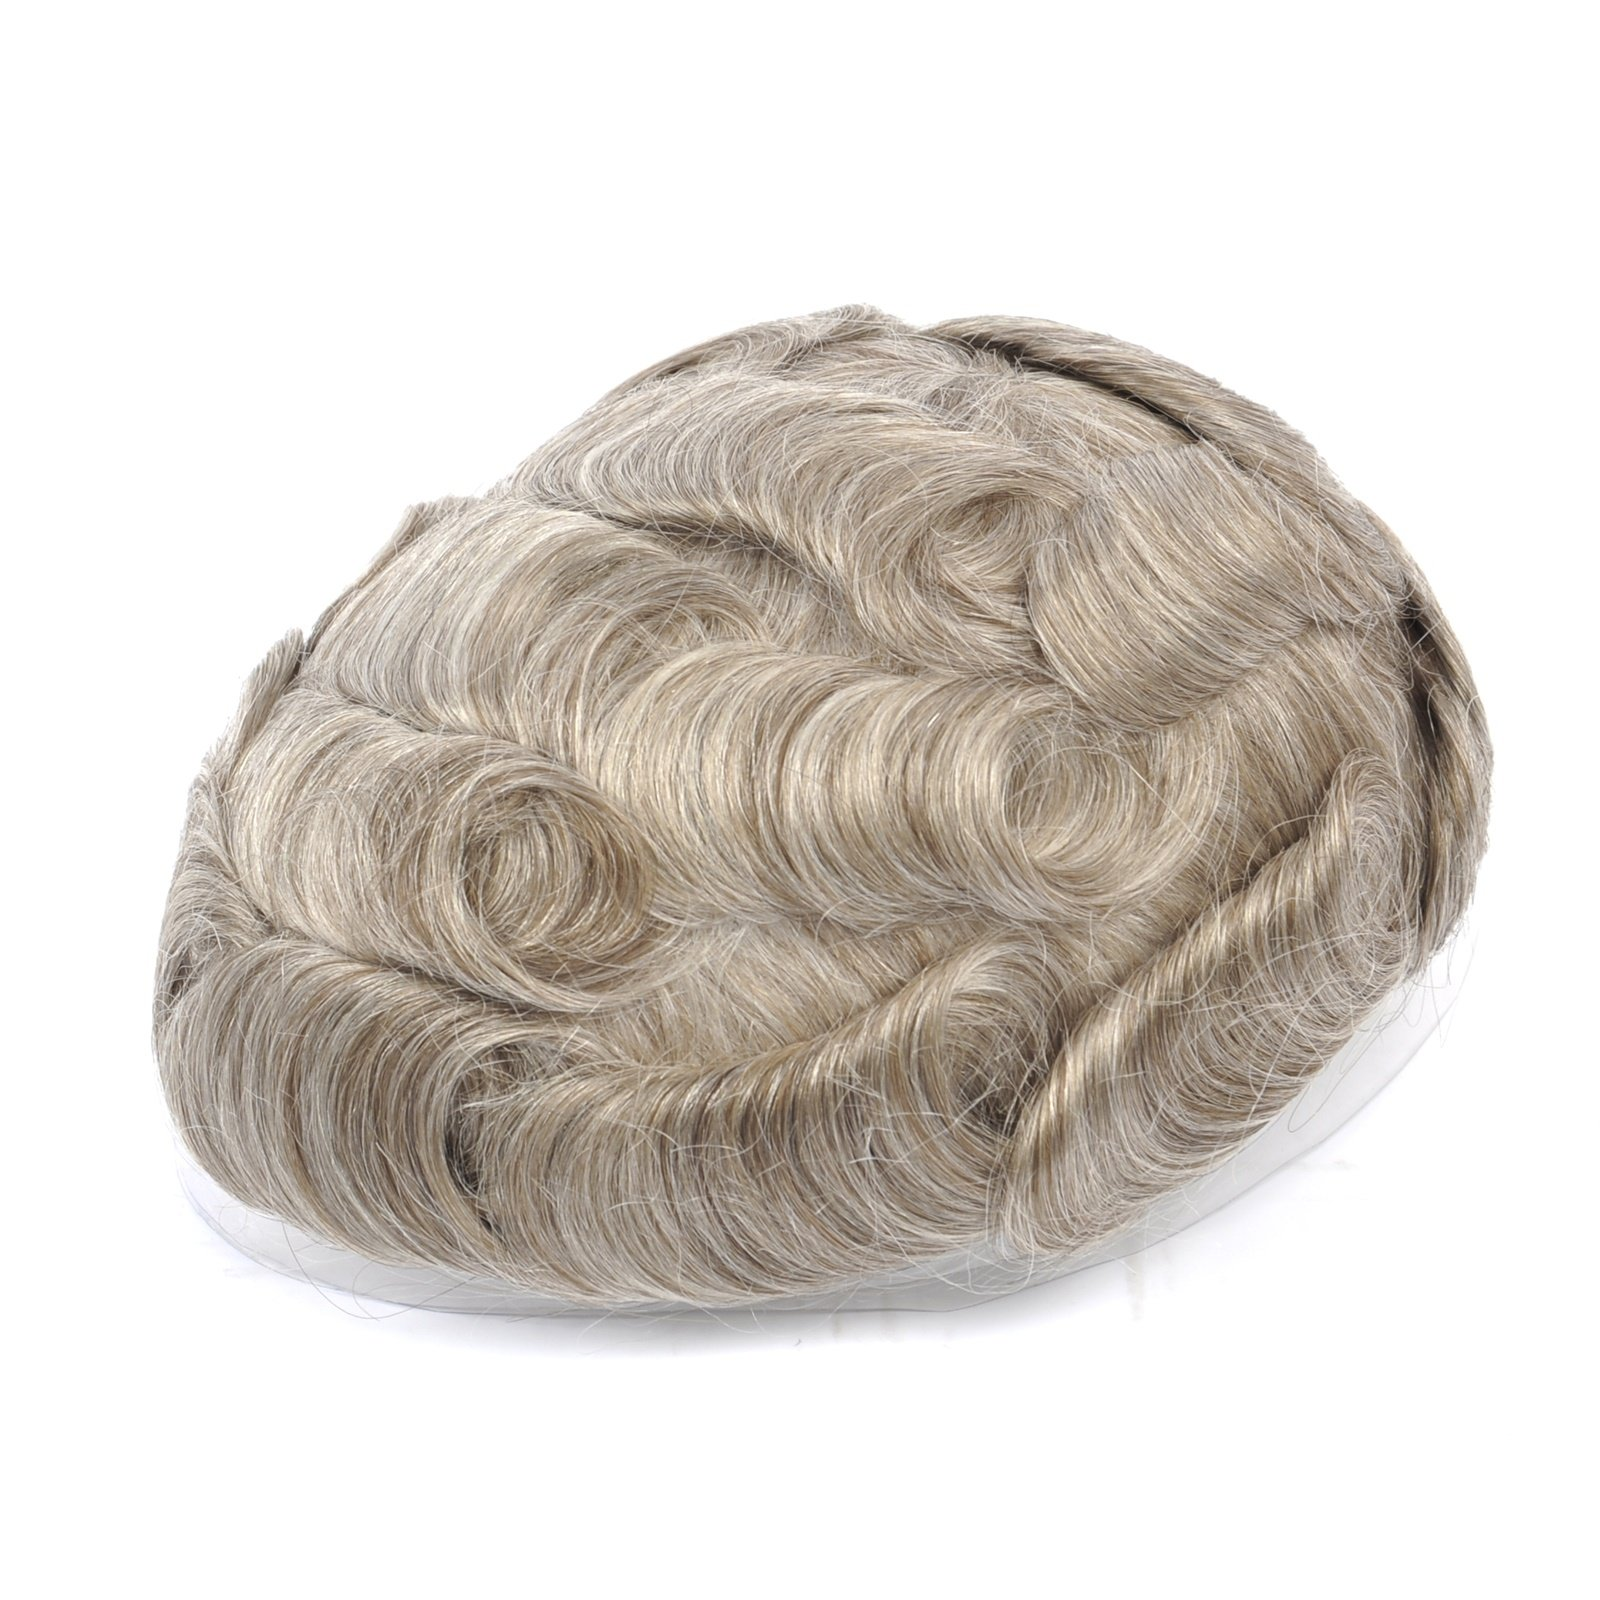 Mens Toupee Hairpiece NG Human Hair Systems 1765#